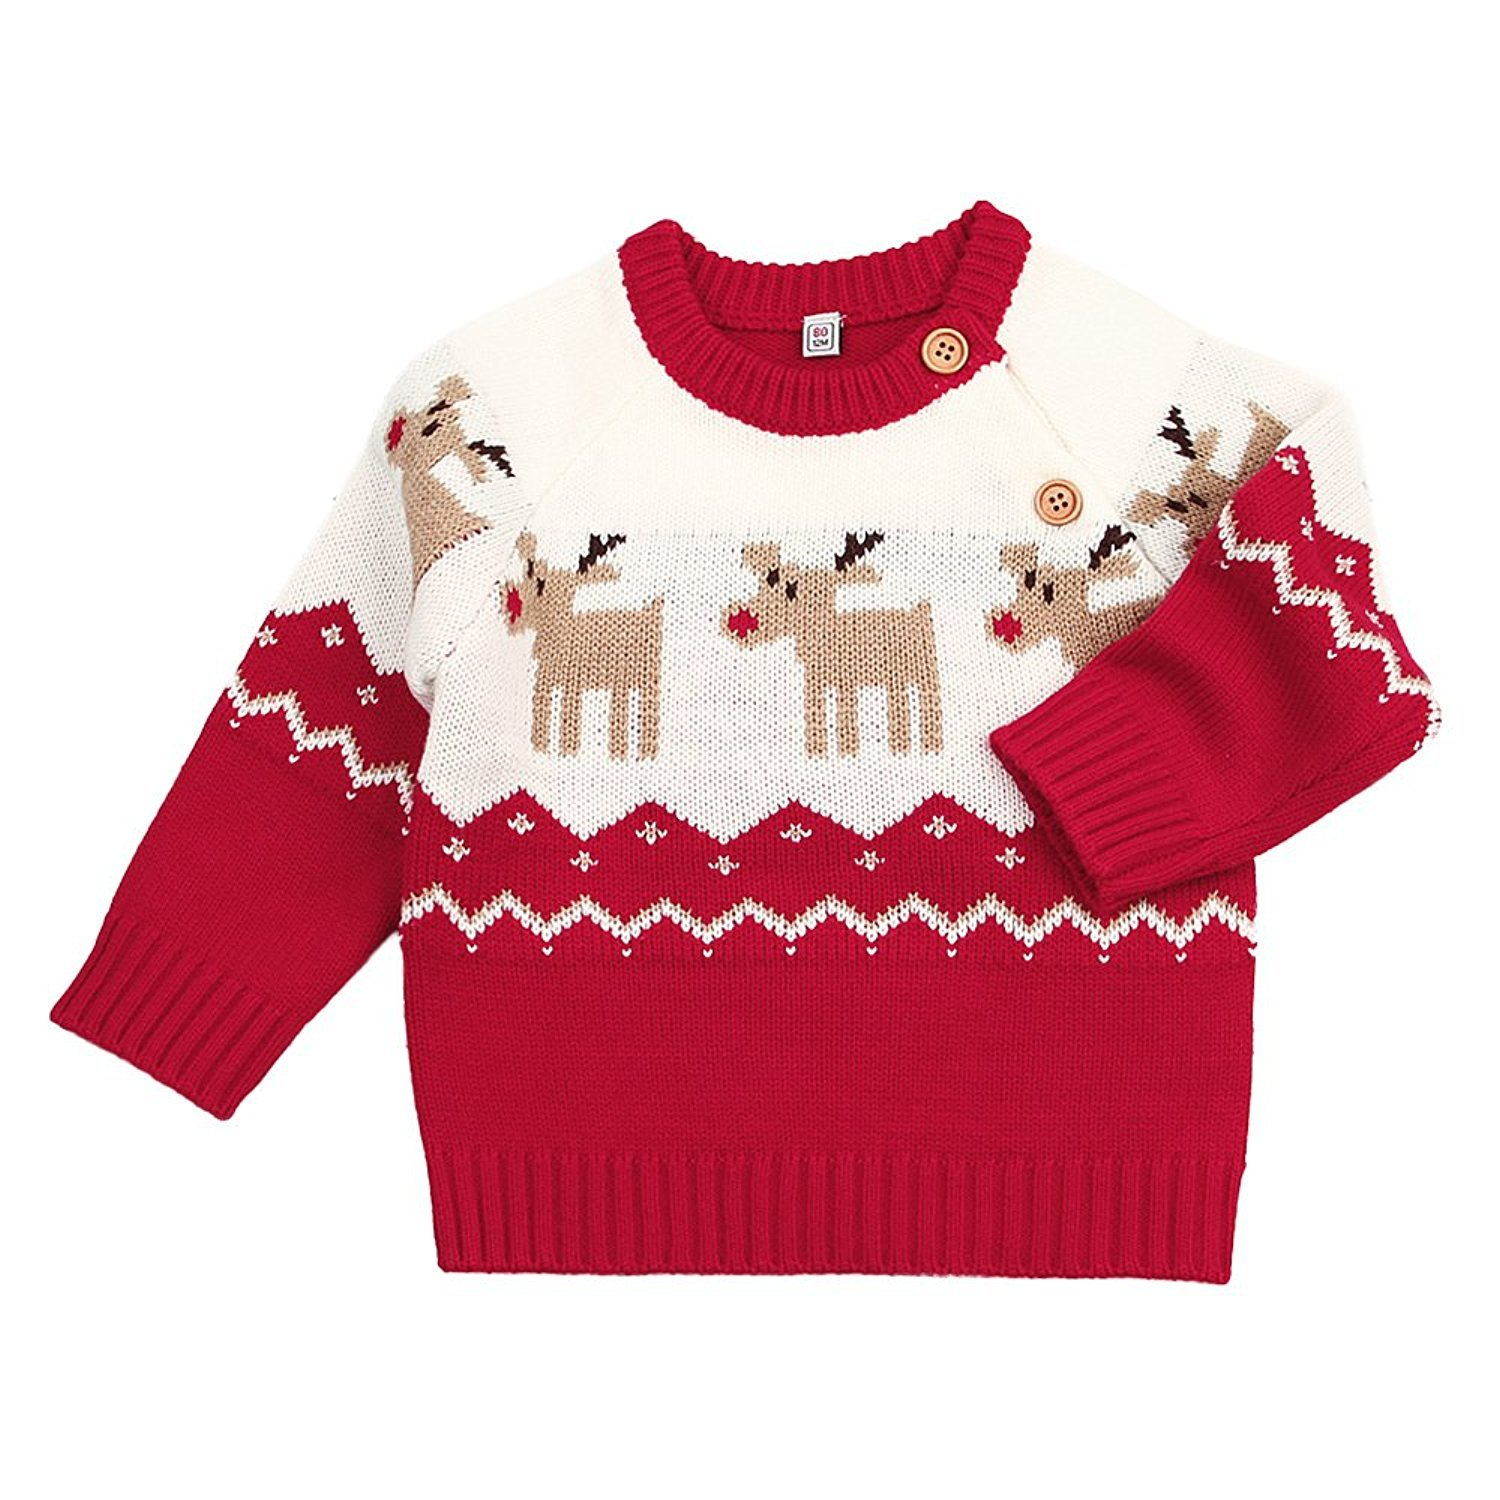 4e974c317d790 27+ Ugly Christmas Sweater Toddler - All About Christmas Decoration 2018